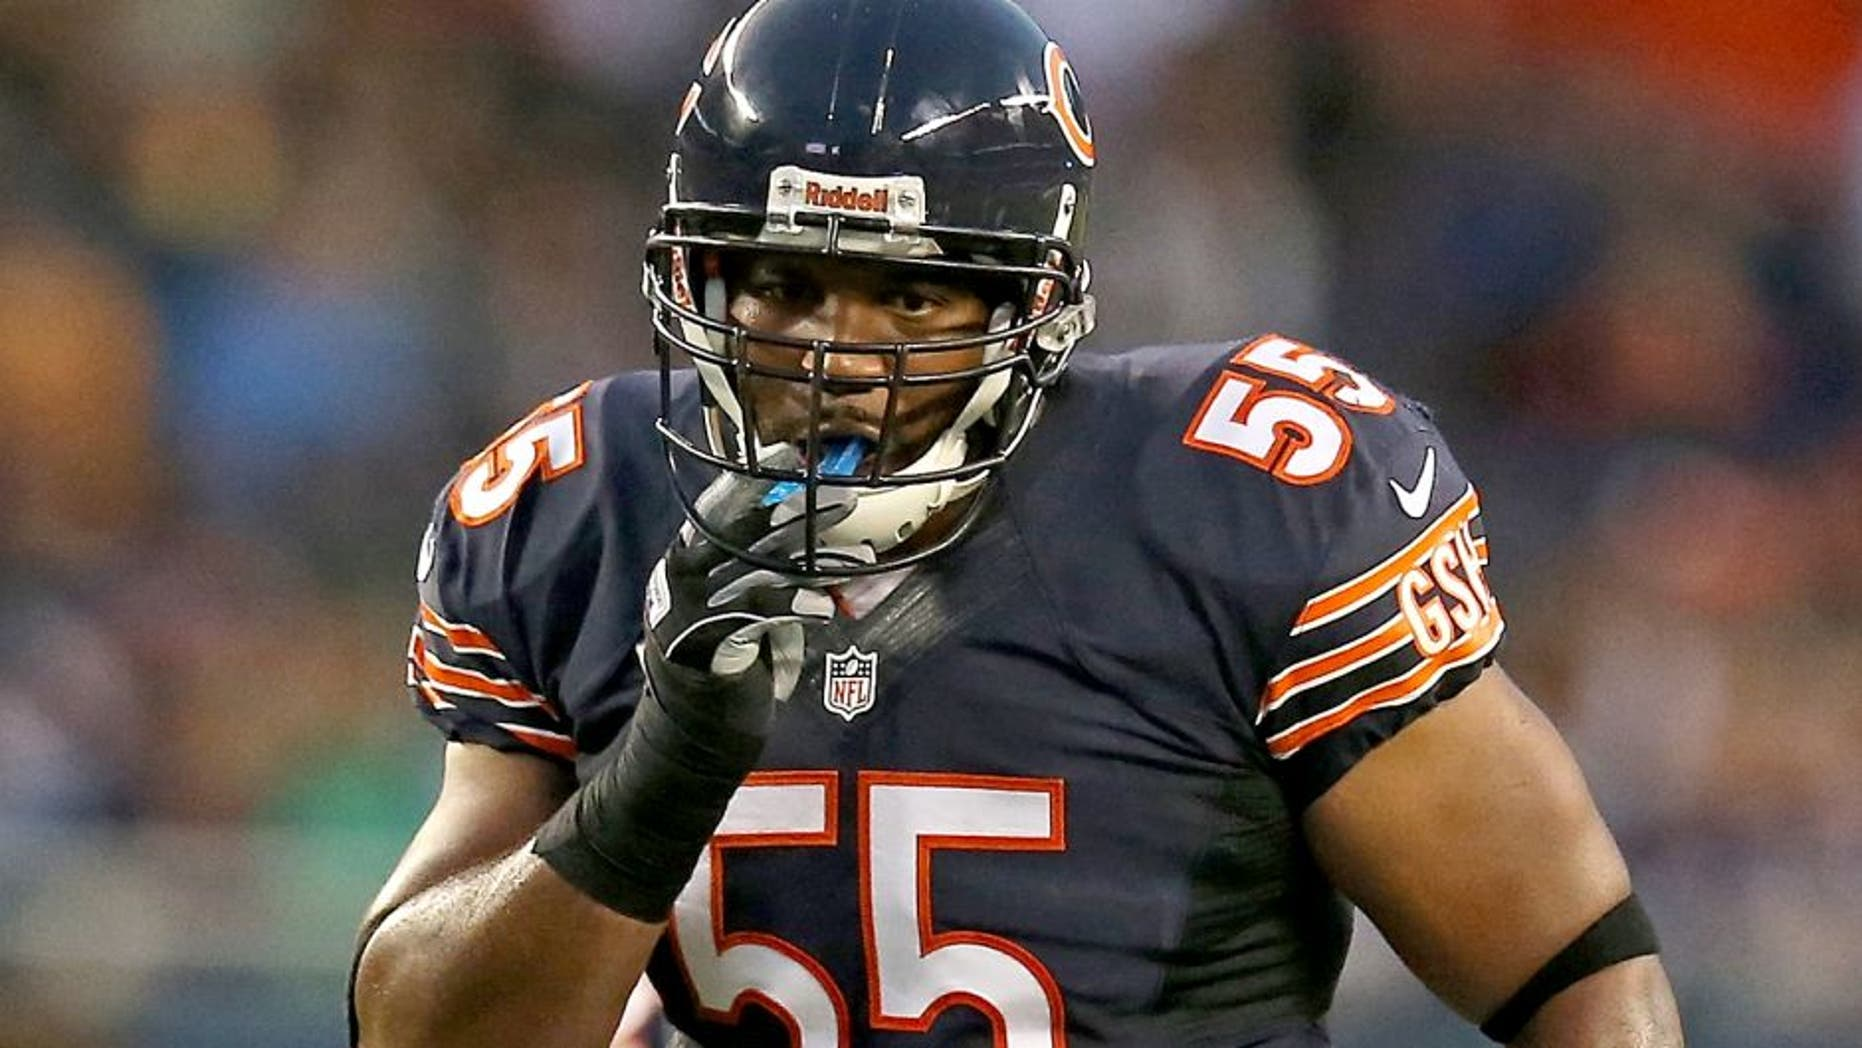 CHICAGO, IL - AUGUST 15: Lance Briggs #55 of the Chicago Bears waits for the snap against the San Diego Chargers at Soldier Field on August 15, 2013 in Chicago, Illinois. The Bears defeated the Chargers 33-28. (Photo by Jonathan Daniel/Getty Images) *** Local Caption *** Lance Briggs